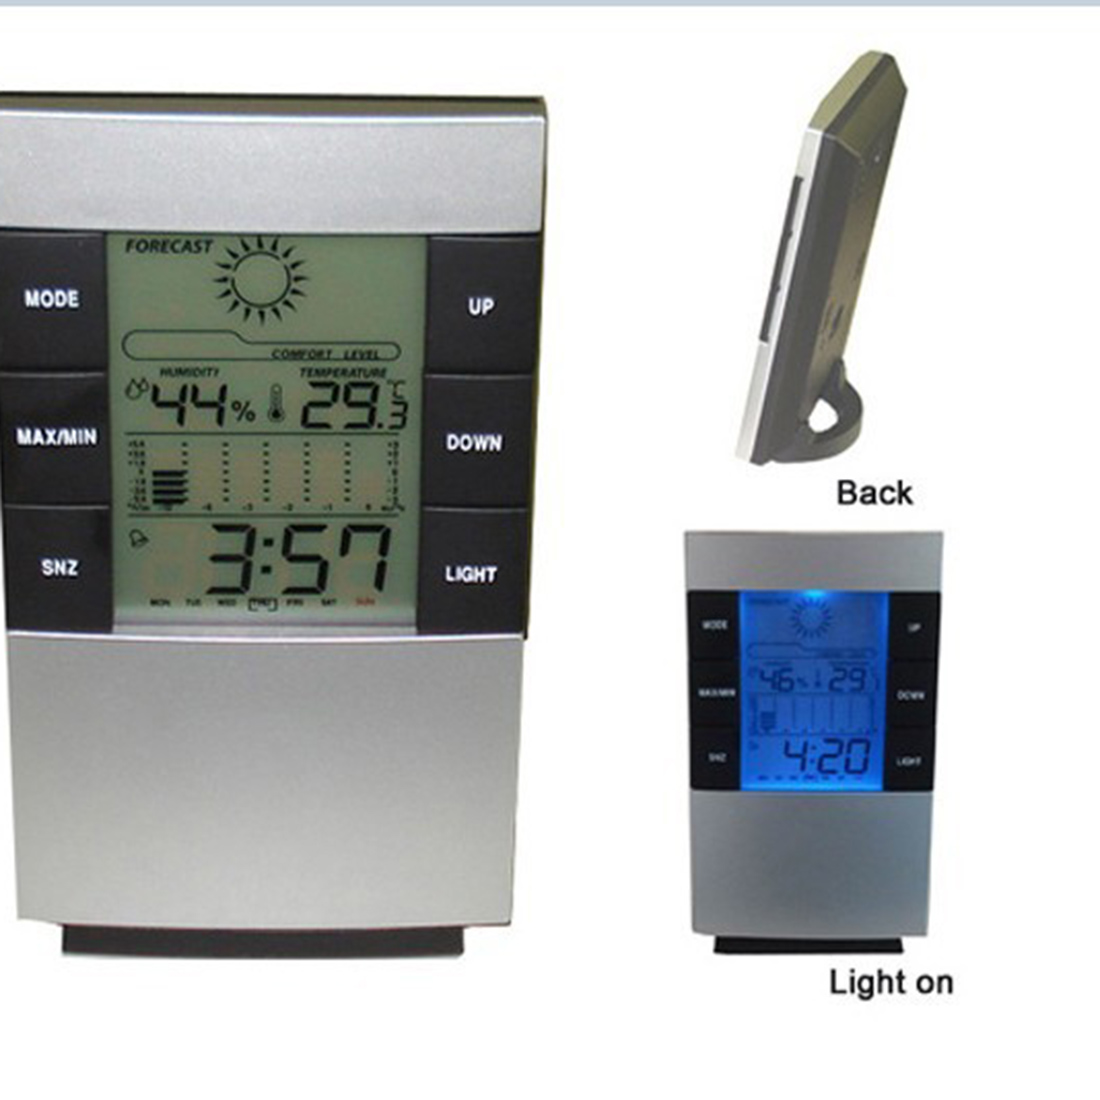 1pcs High Accuracy LCD Digital Thermometer Hygrometer Electronic Temperature Humidity Meter Clock Weather Station Indoor 1pcs high accuracy lcd digital thermometer hygrometer electronic temperature humidity meter clock weather station indoor